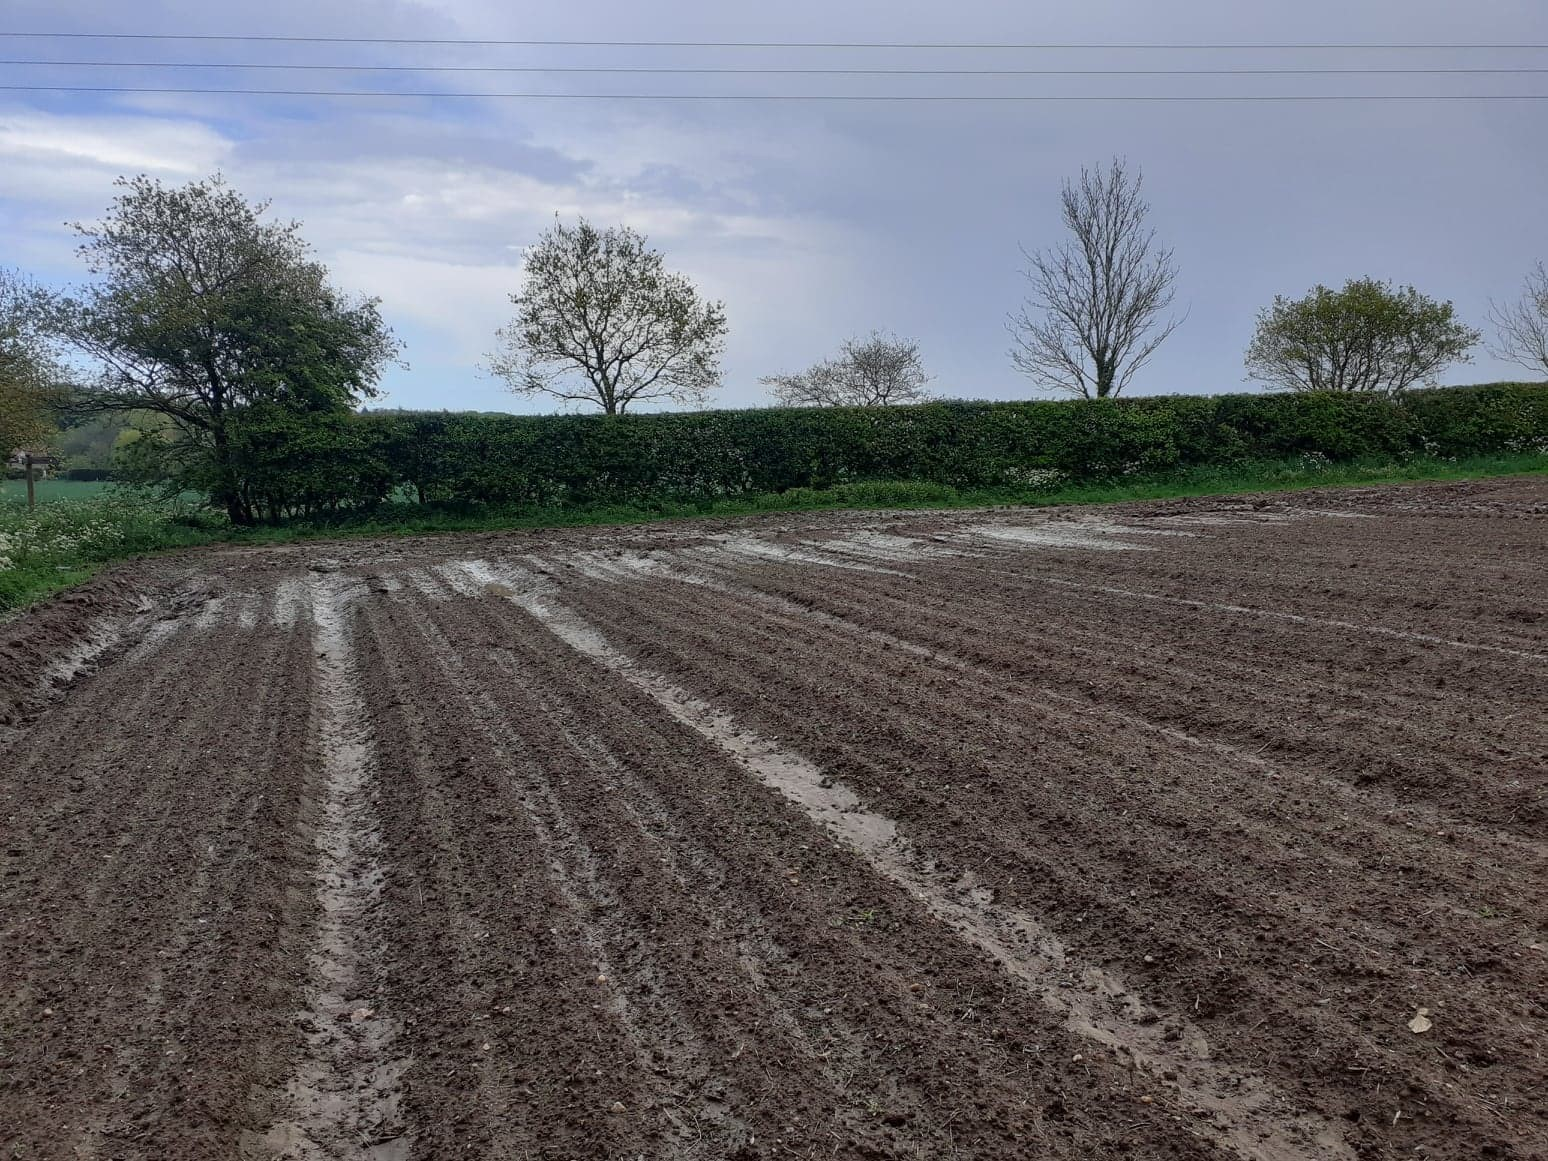 Slow crop germination coupled with heavy rainfall is a concern for water quality